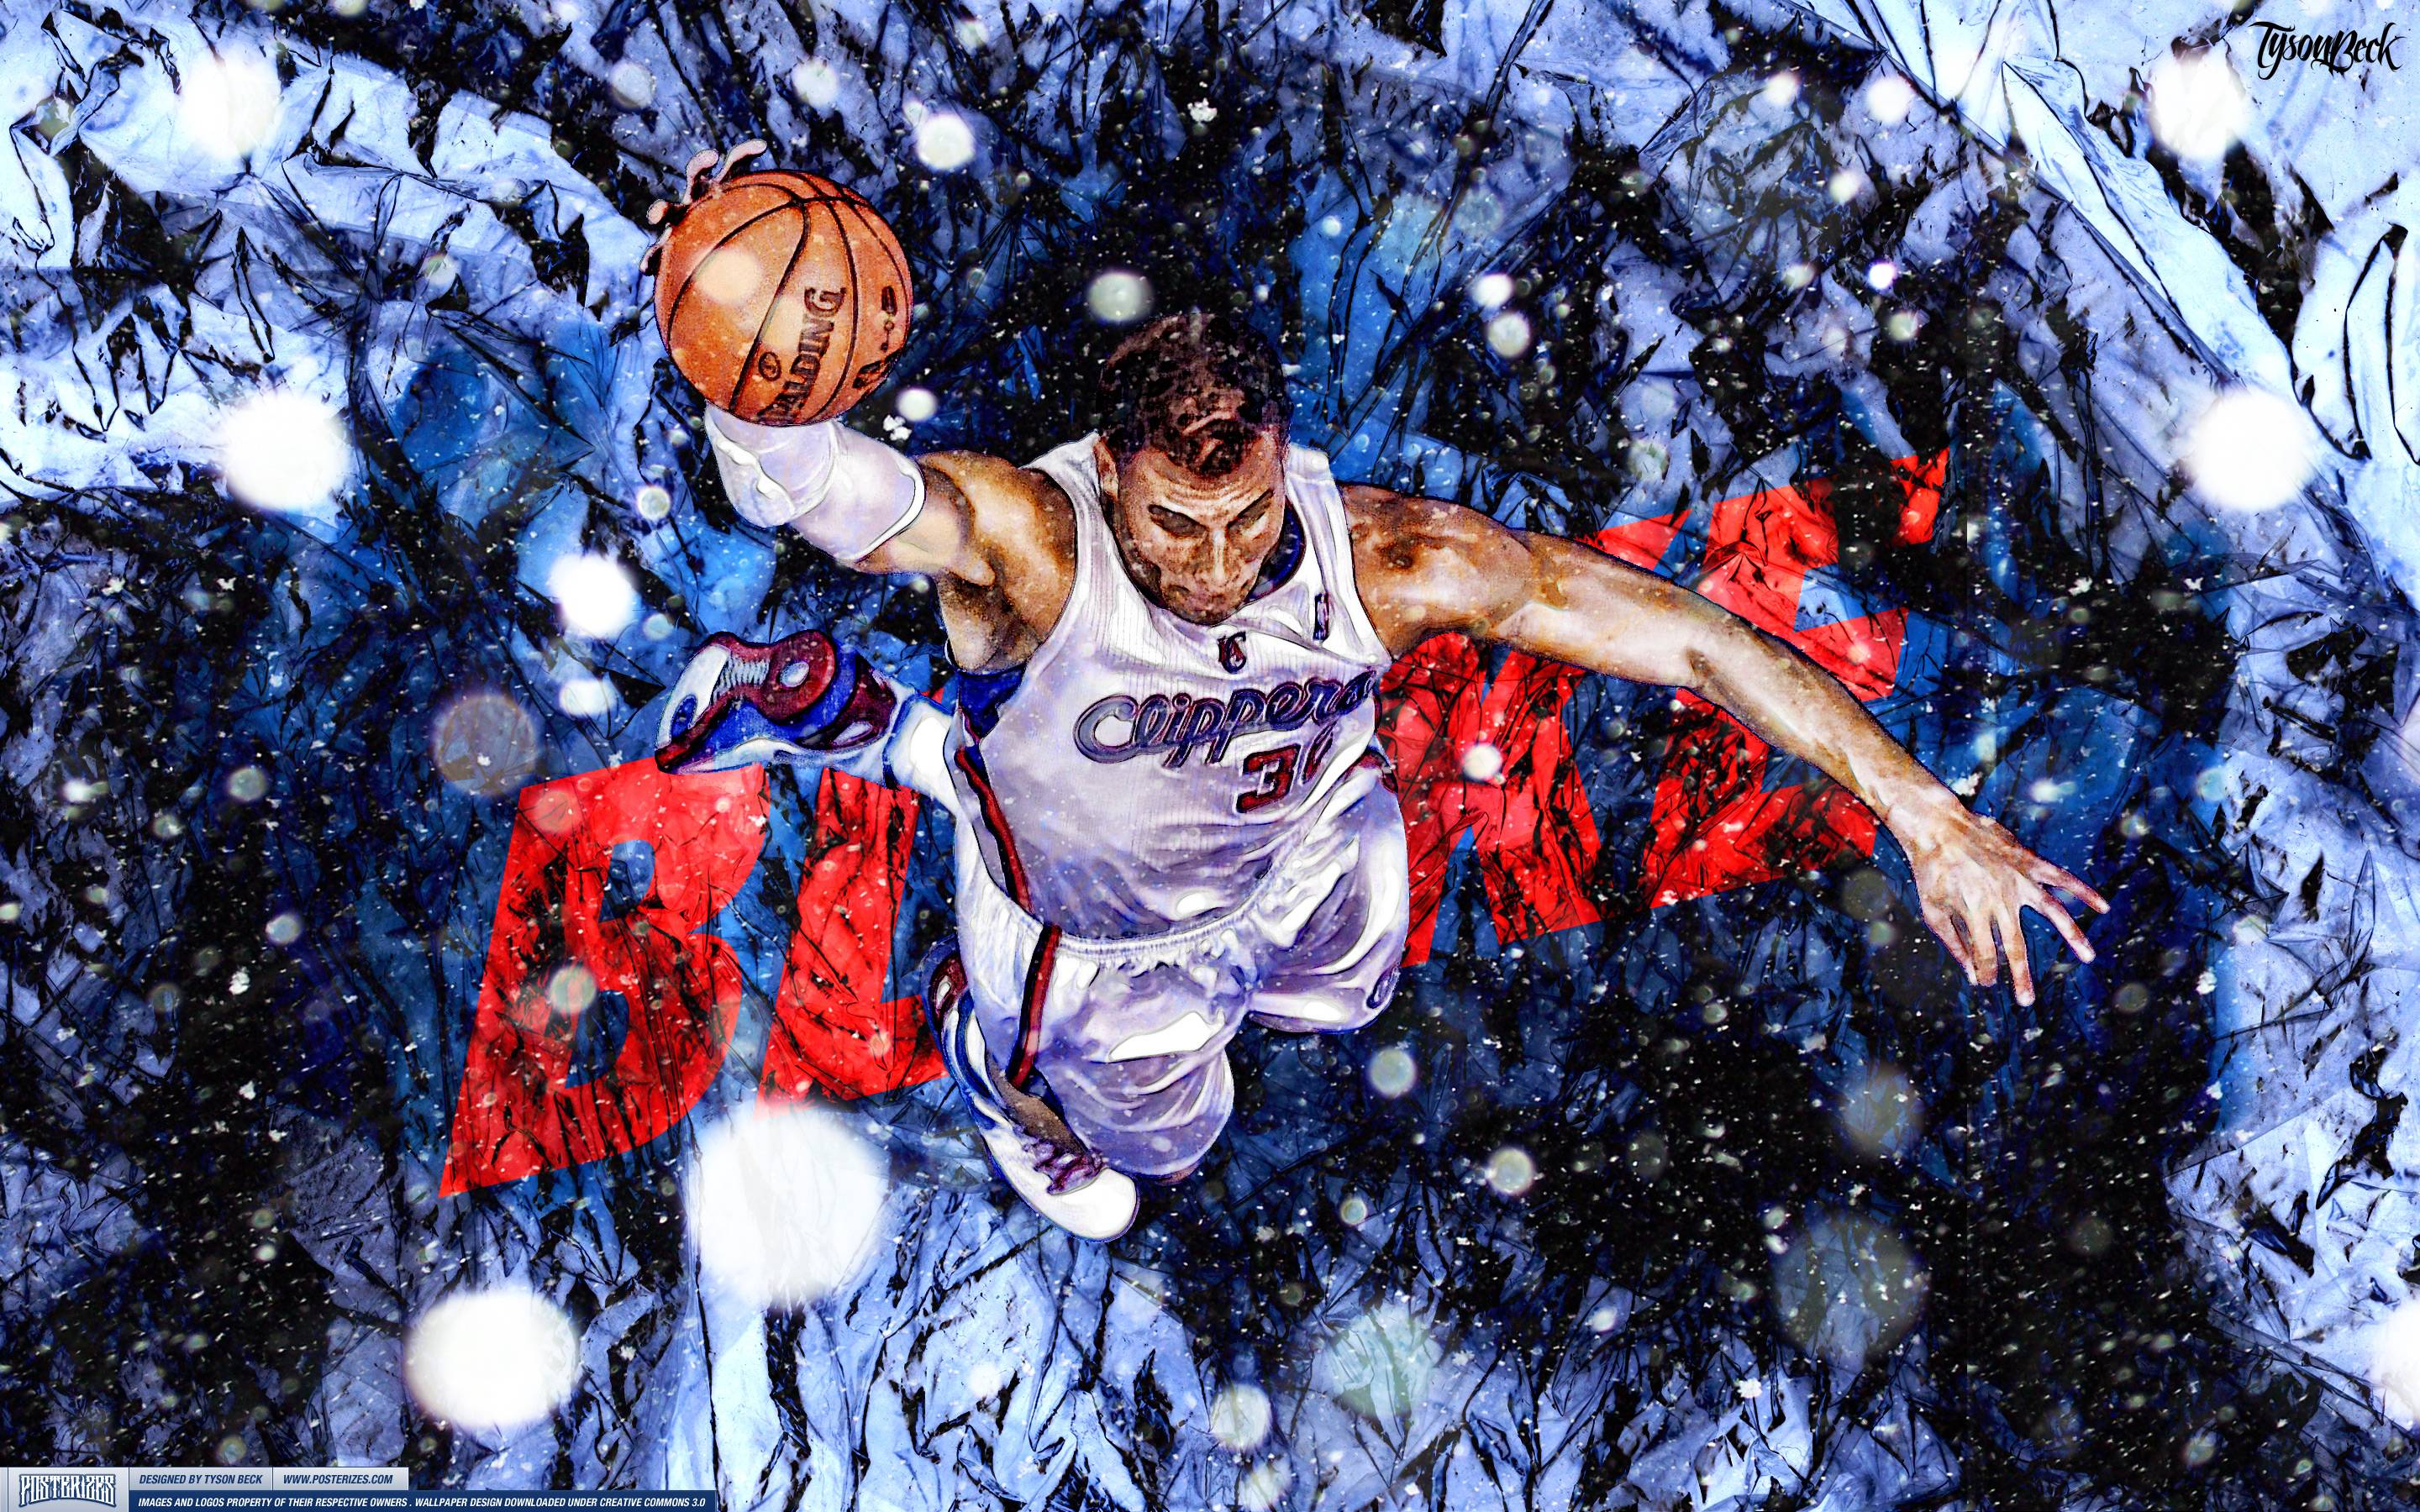 blake griffin wallpaper - photo #21